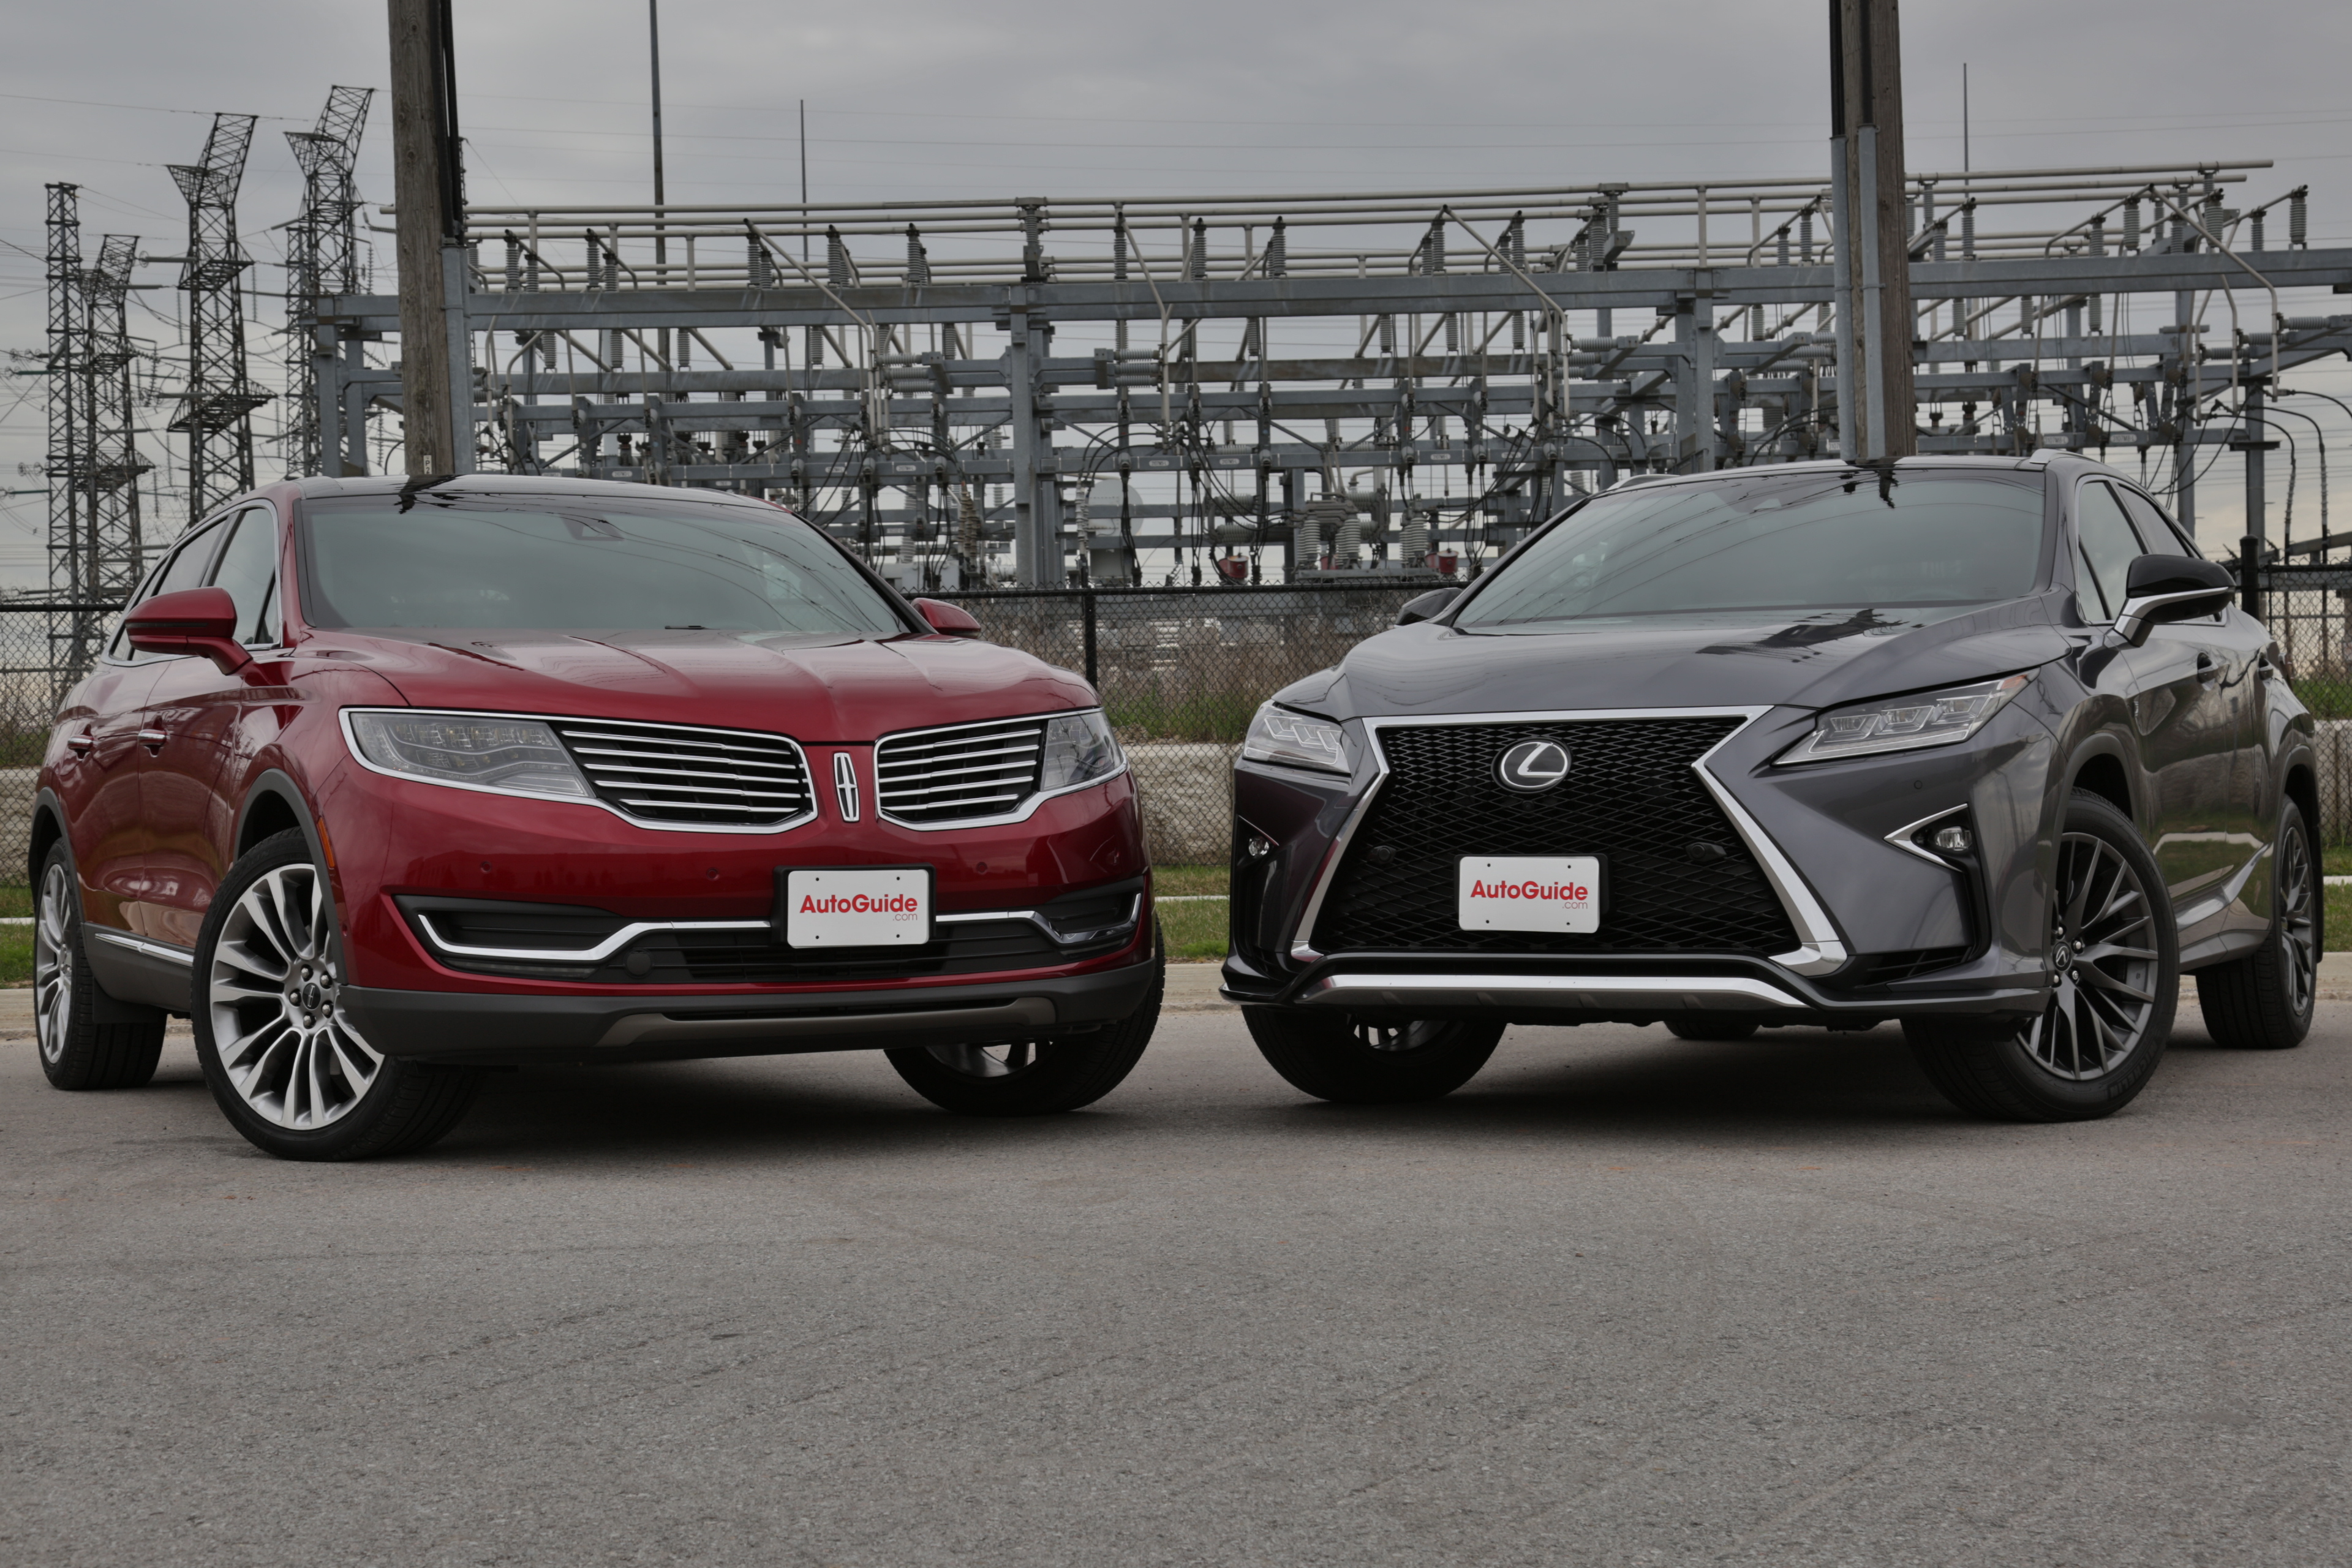 2016 Lexus RX 350 Vs Lincoln MKX